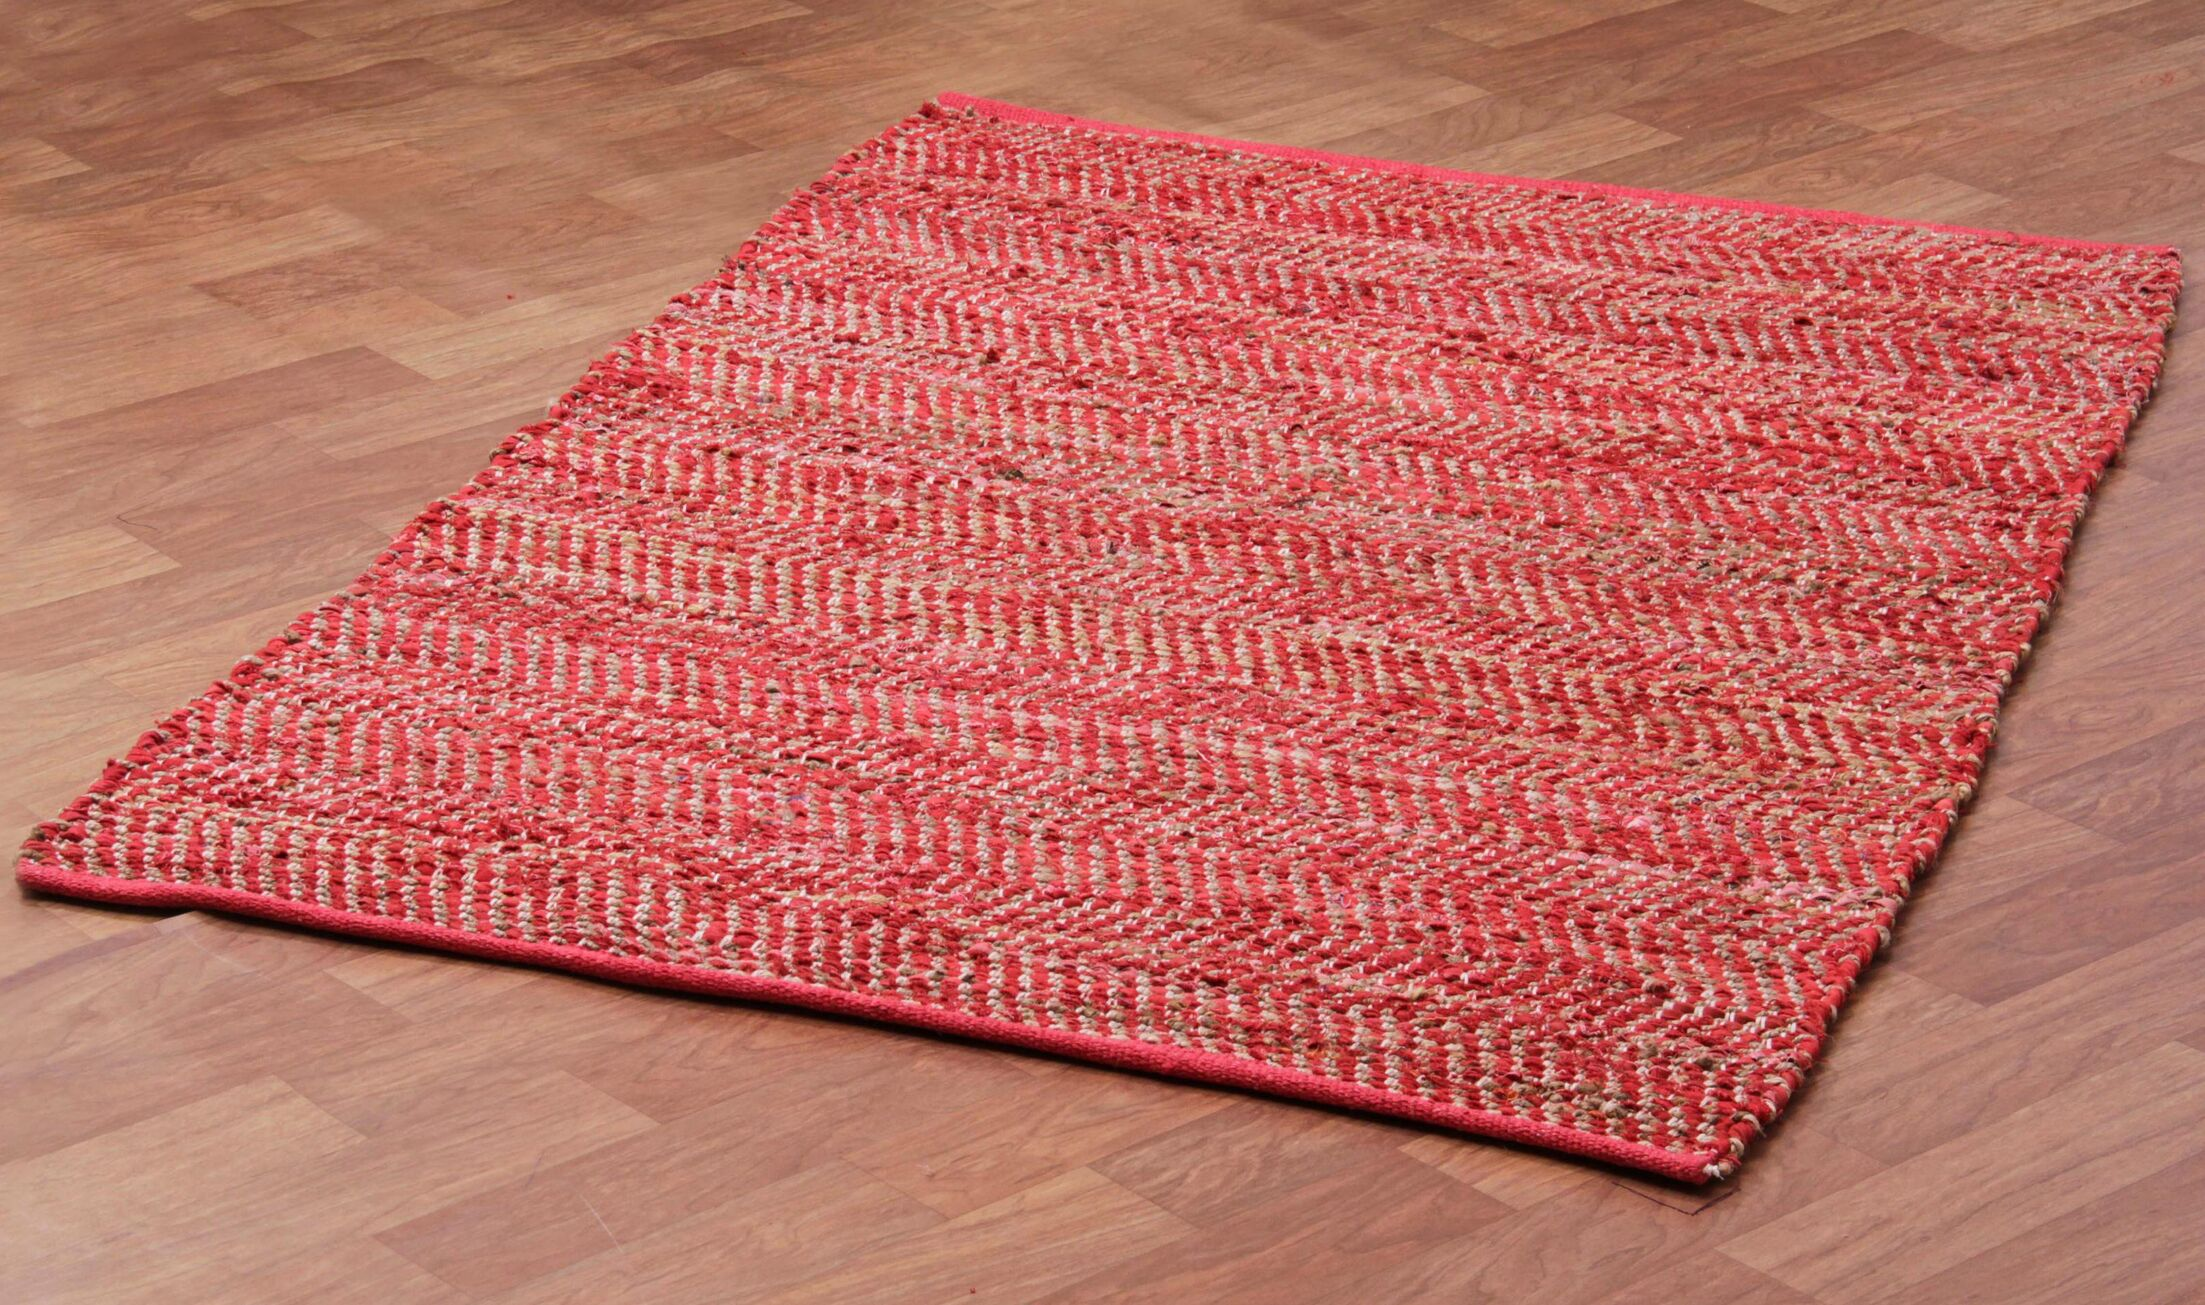 Synthia Hand Woven Cotton Red/Green/Tan Area Rug Rug Size: 5' x 8'